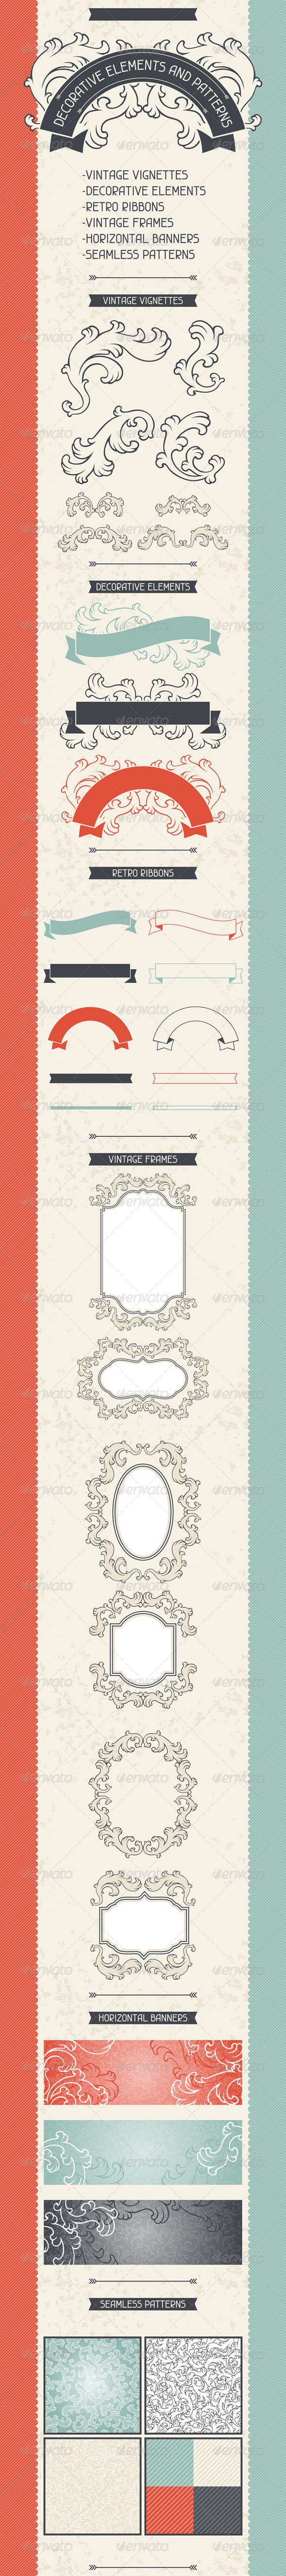 GraphicRiver Decorative Elements and Patterns 4996734